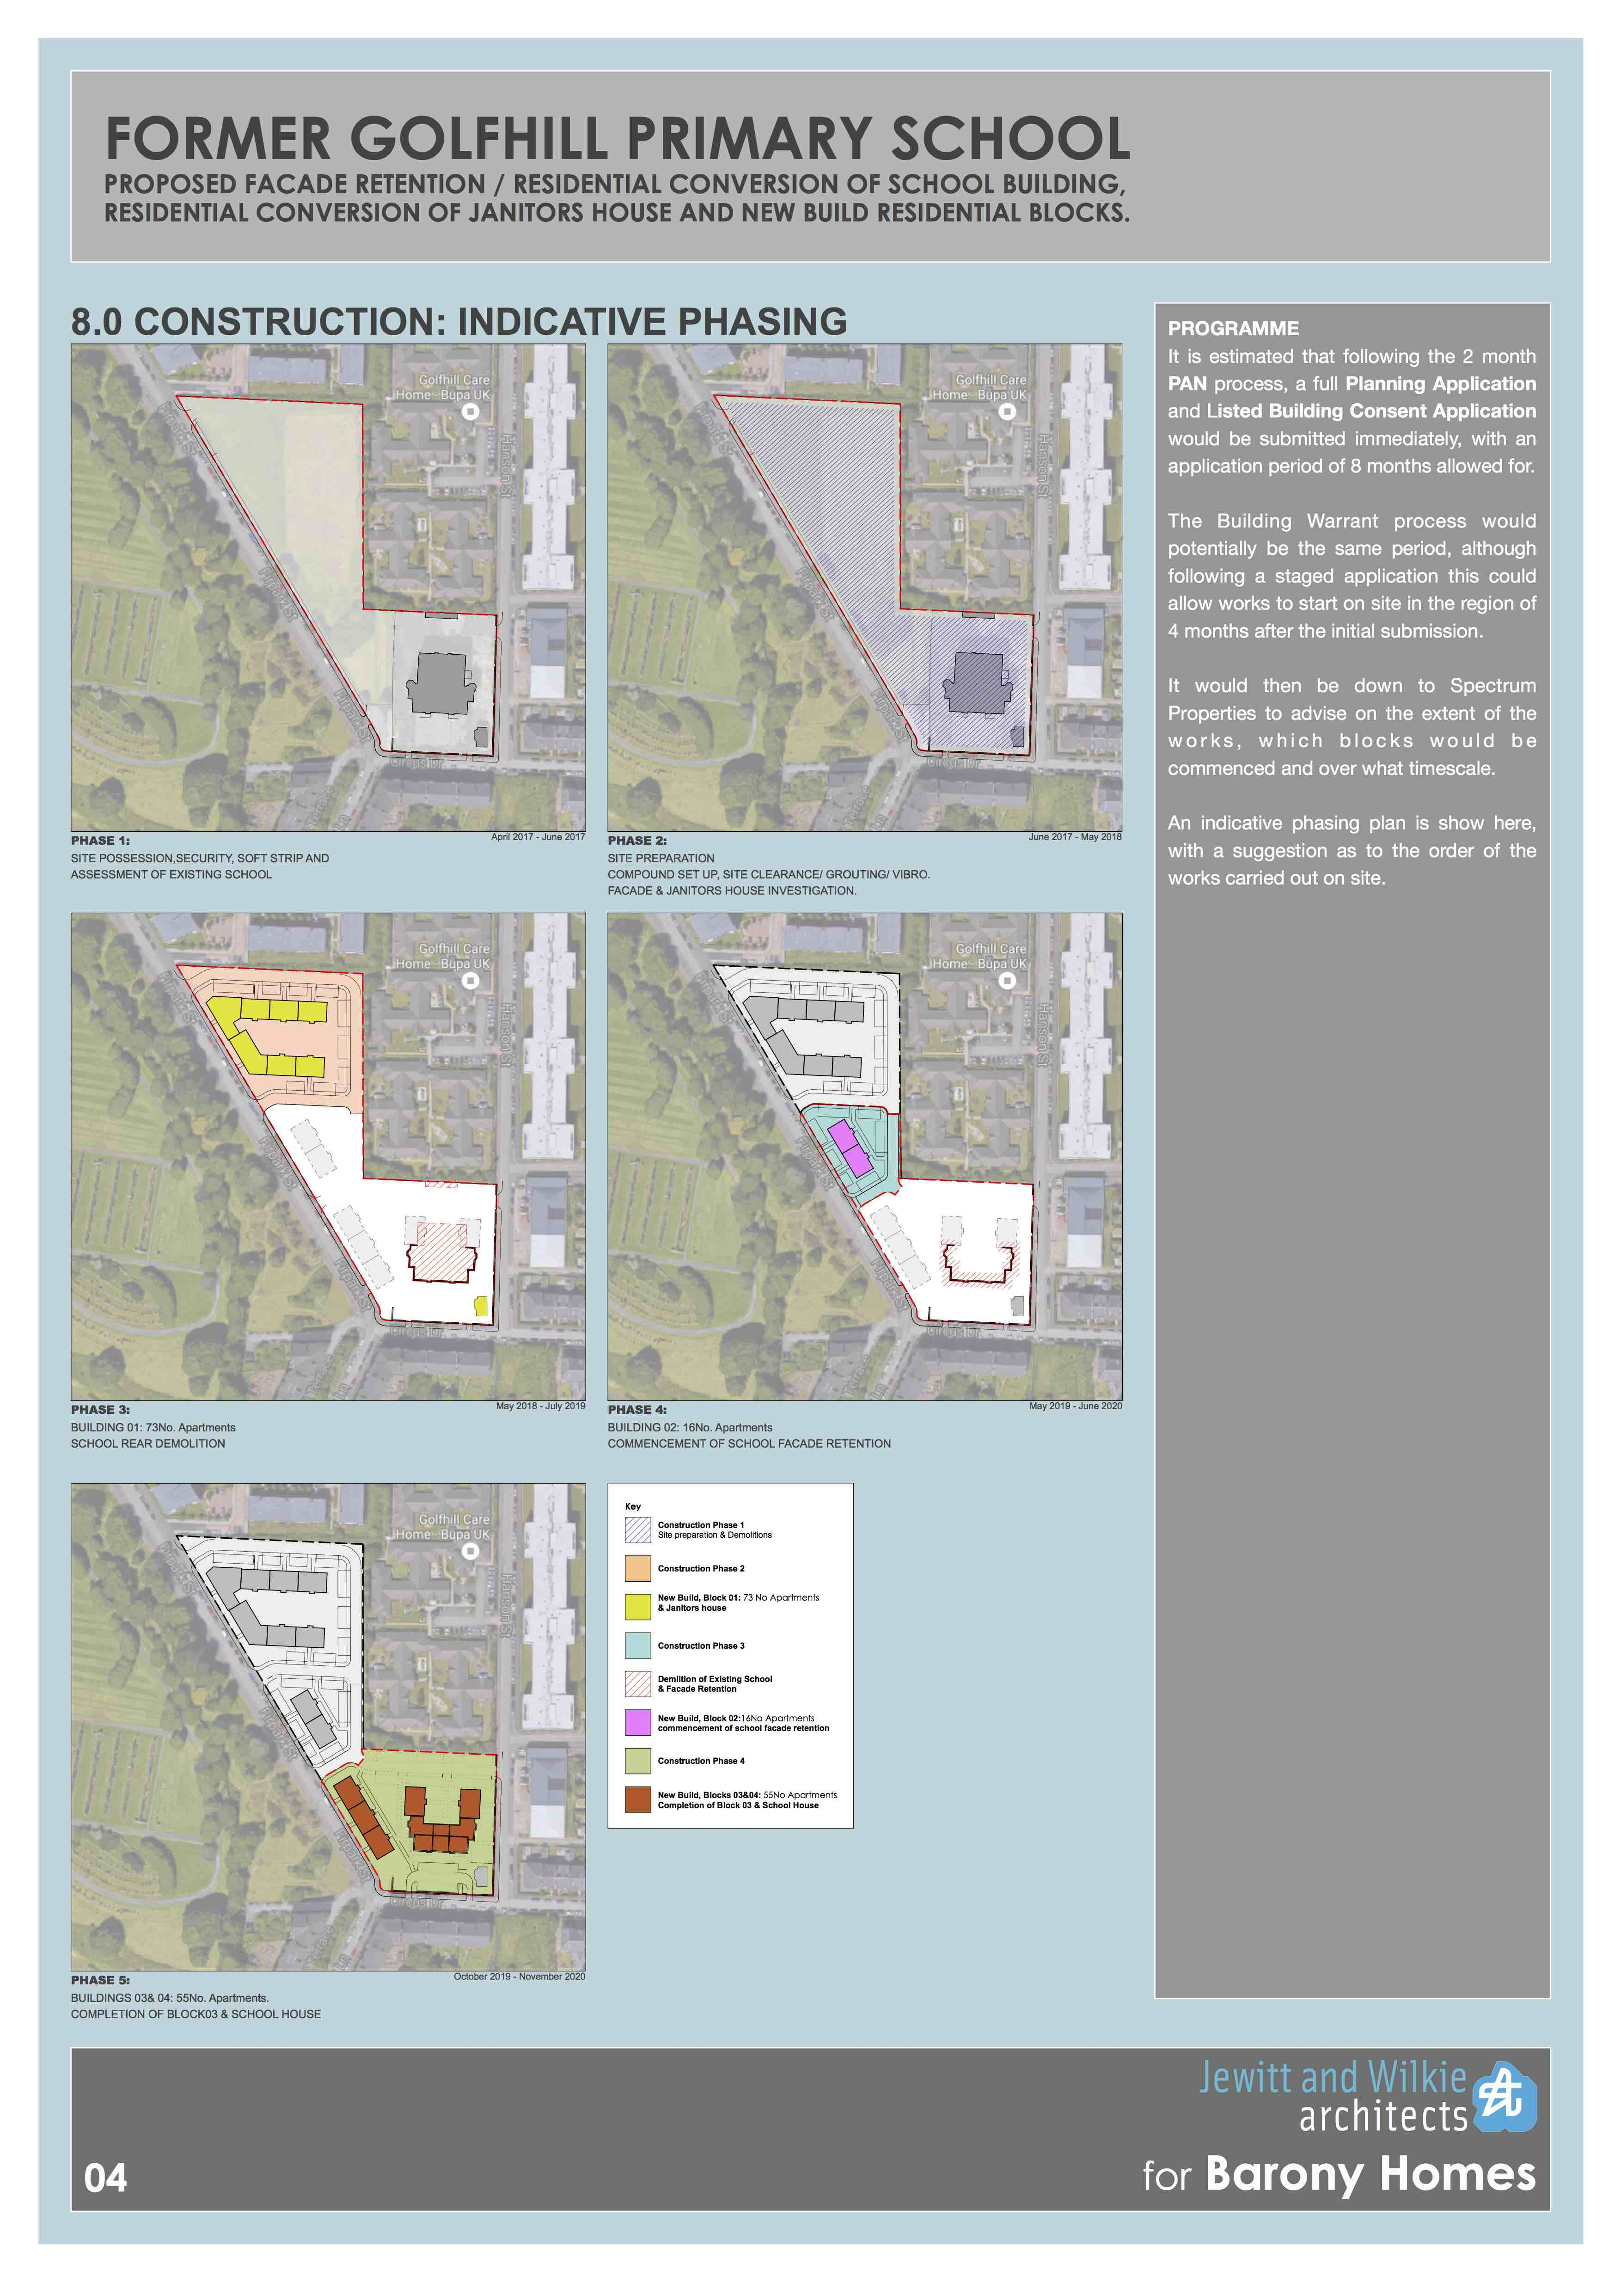 Former golfhill primary school proposal indicative phasing